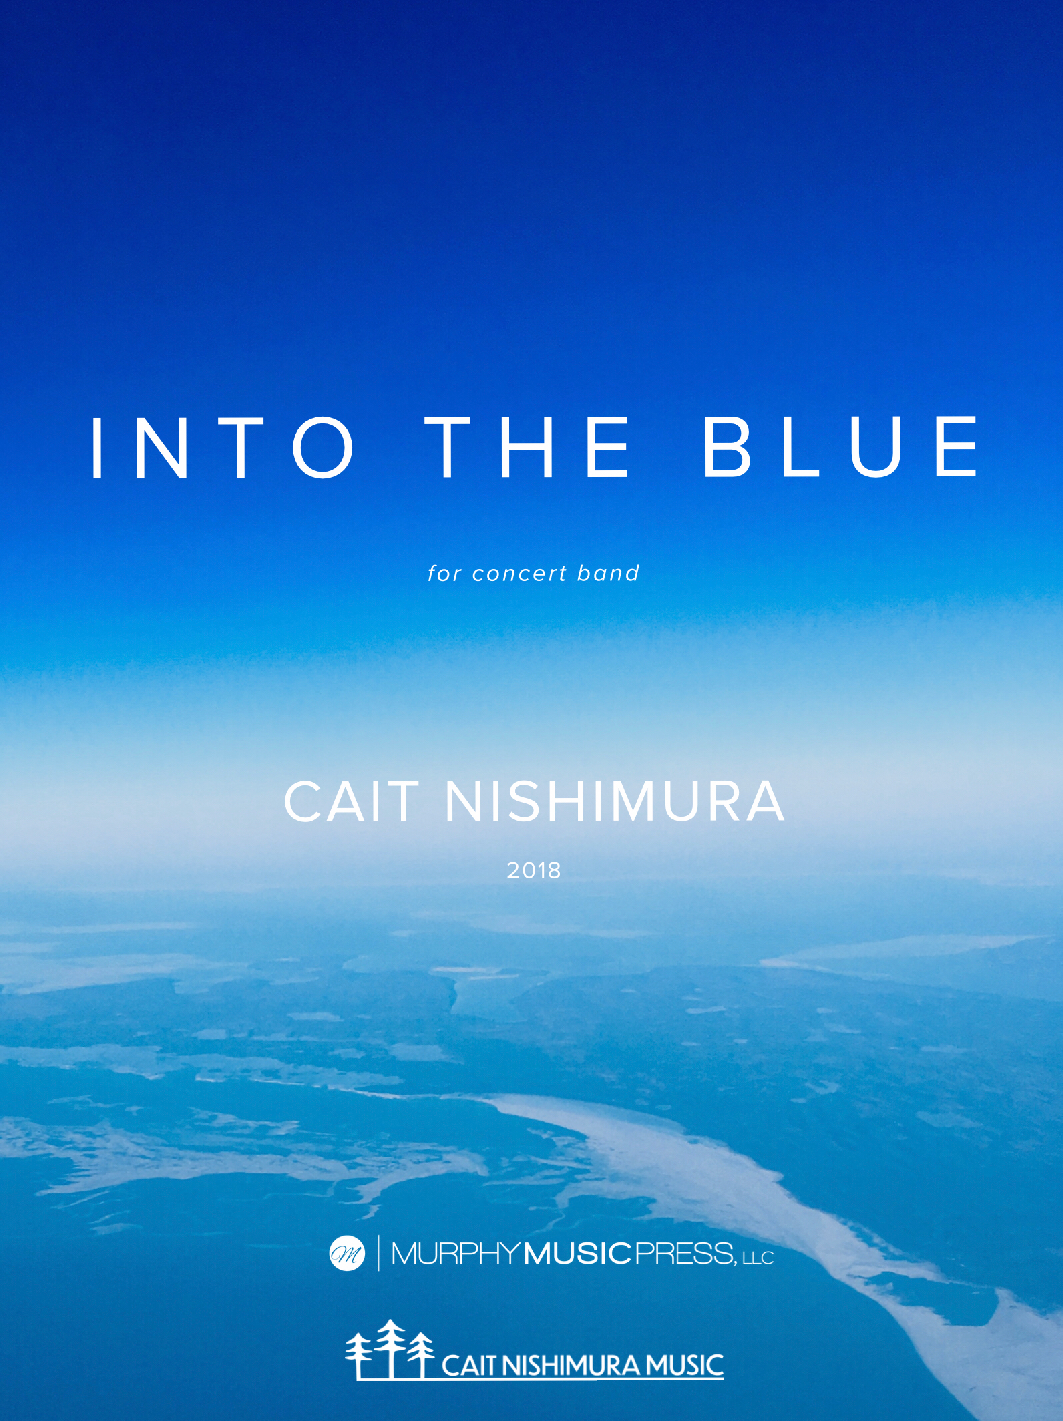 Into The Blue by Cait Nishimura